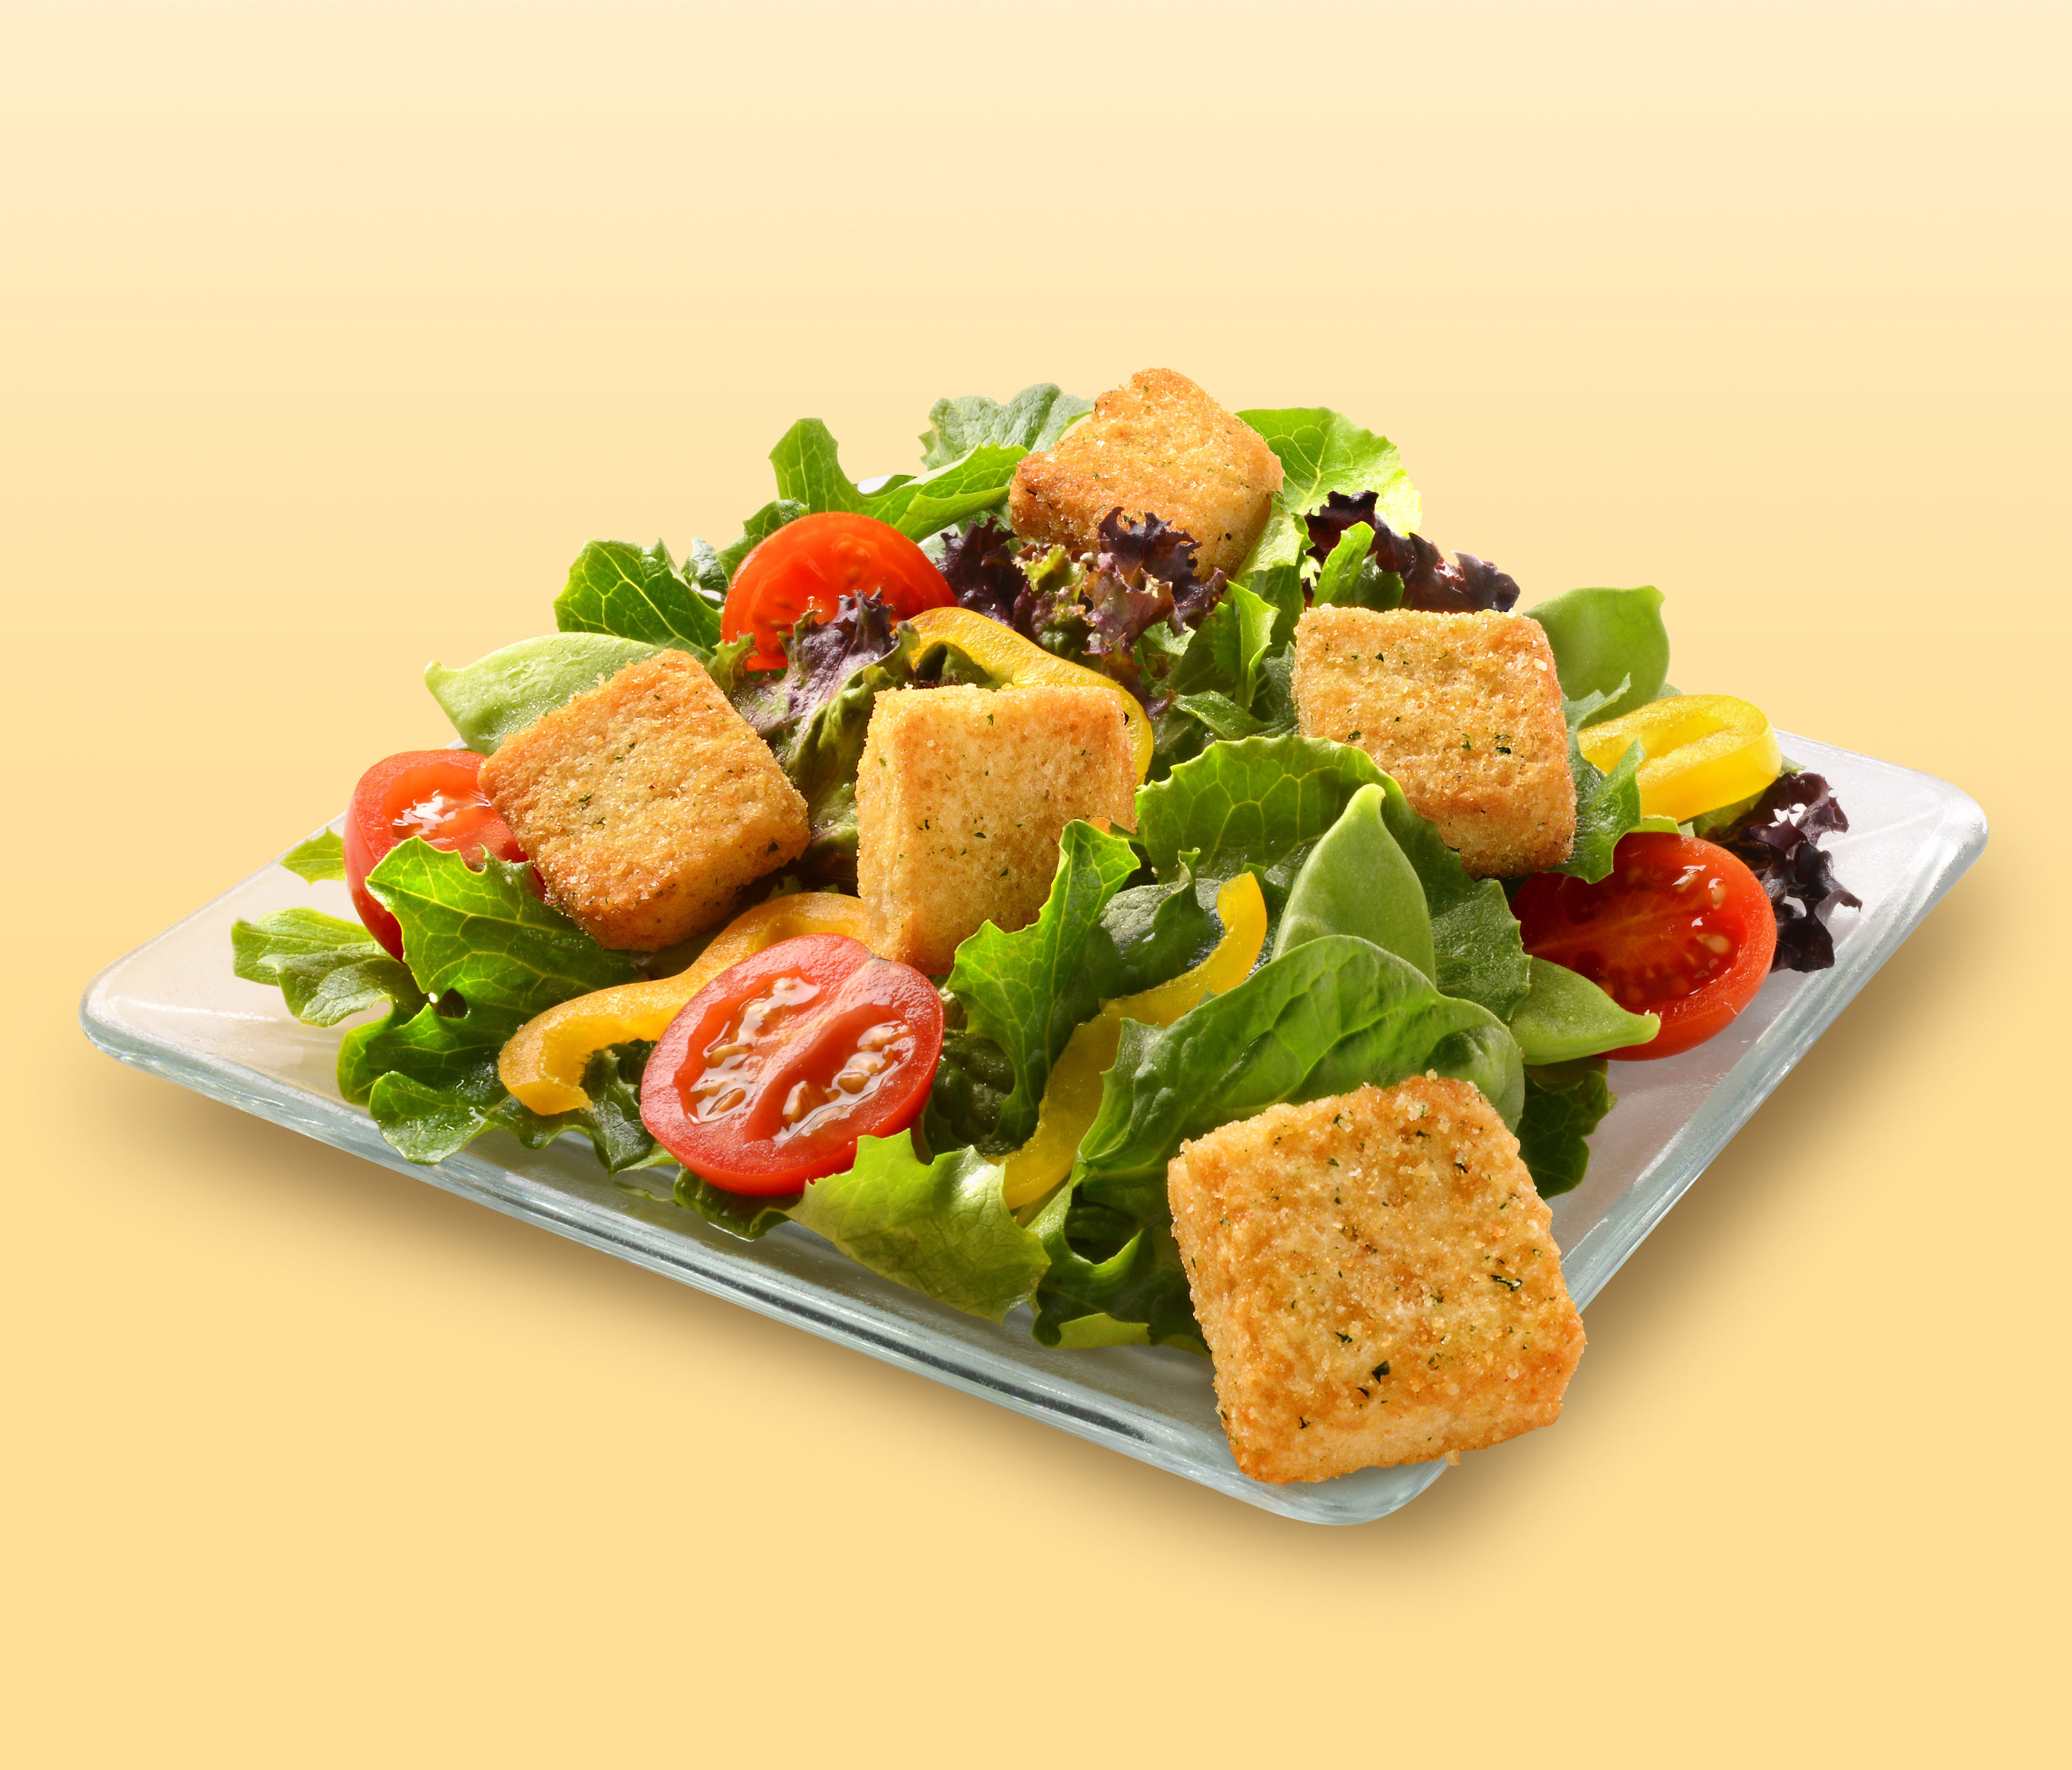 mike wepplo photoreal photography salad tomato peppers croutons